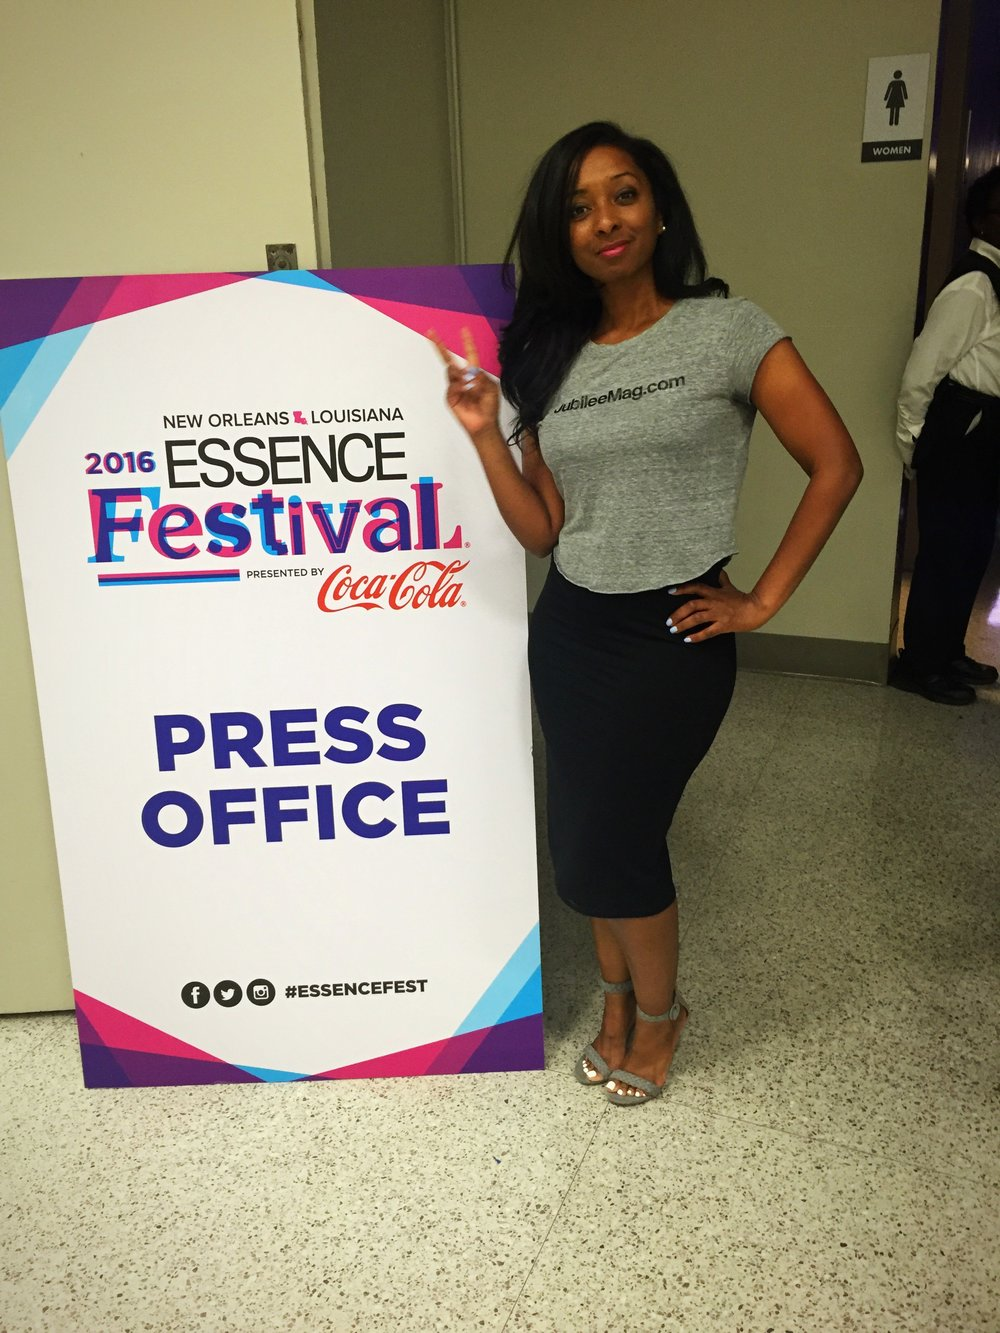 Covering days of music, arts and sisterhood at Essence Fest!